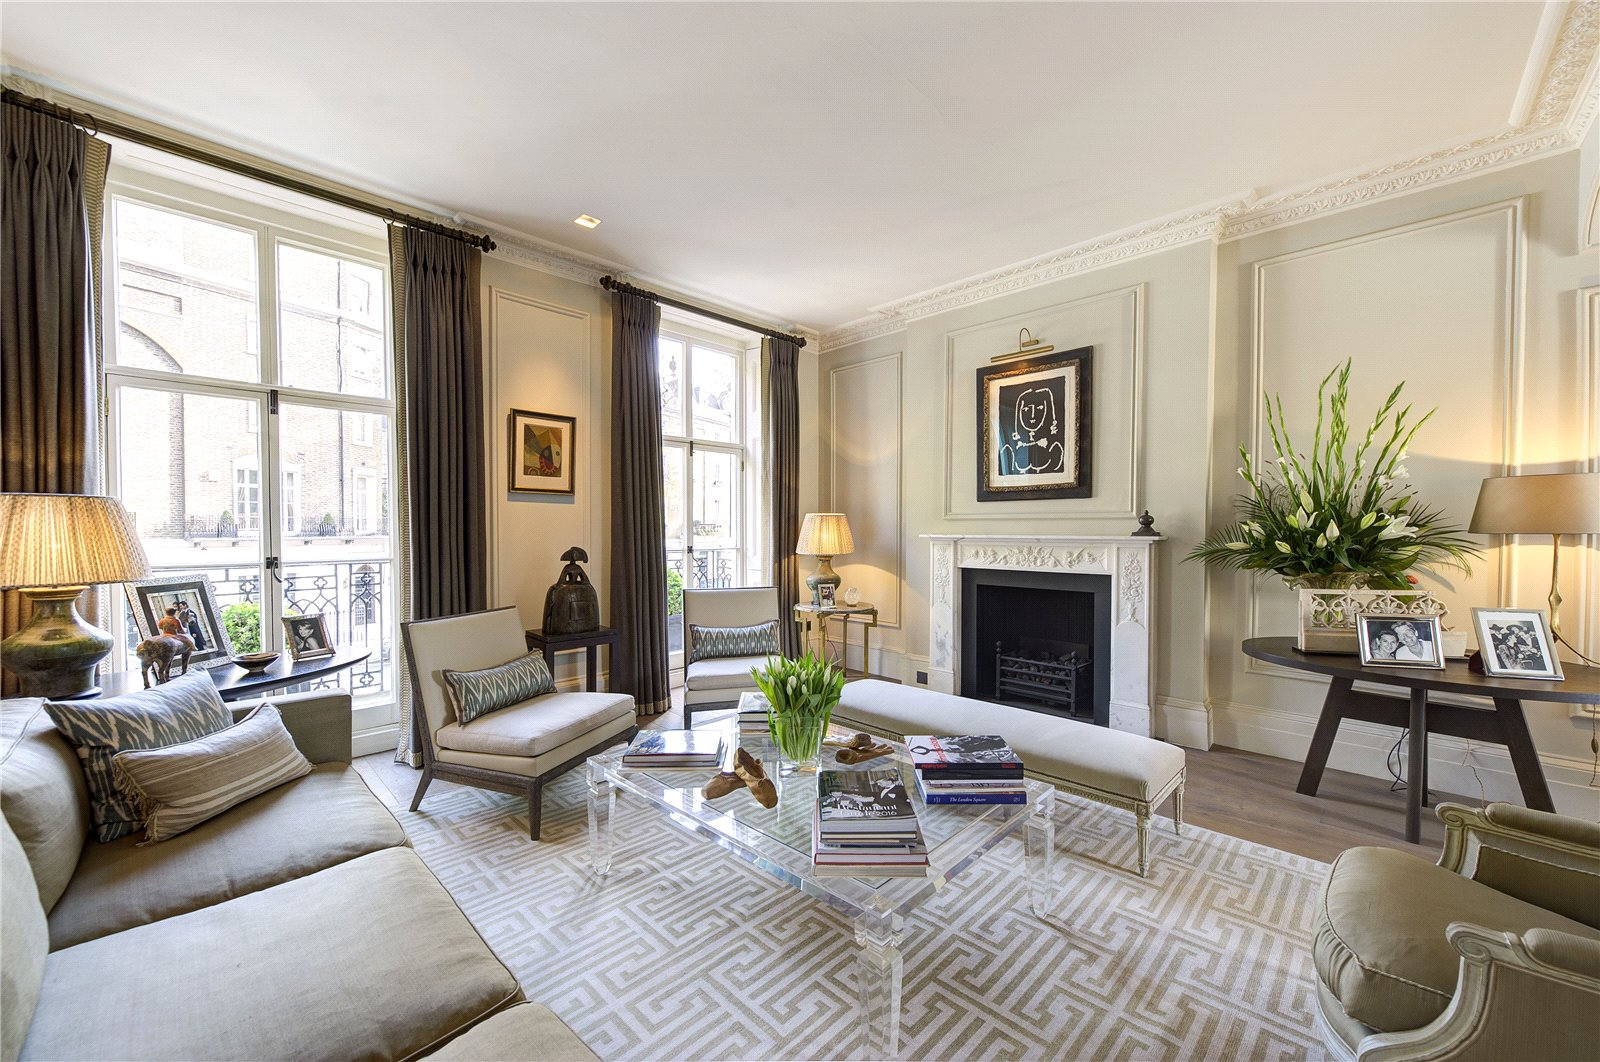 Single Family Home for Sale at Wilton Place, Knightsbridge, London, SW1X Wilton Place, Knightsbridge, London, SW1X